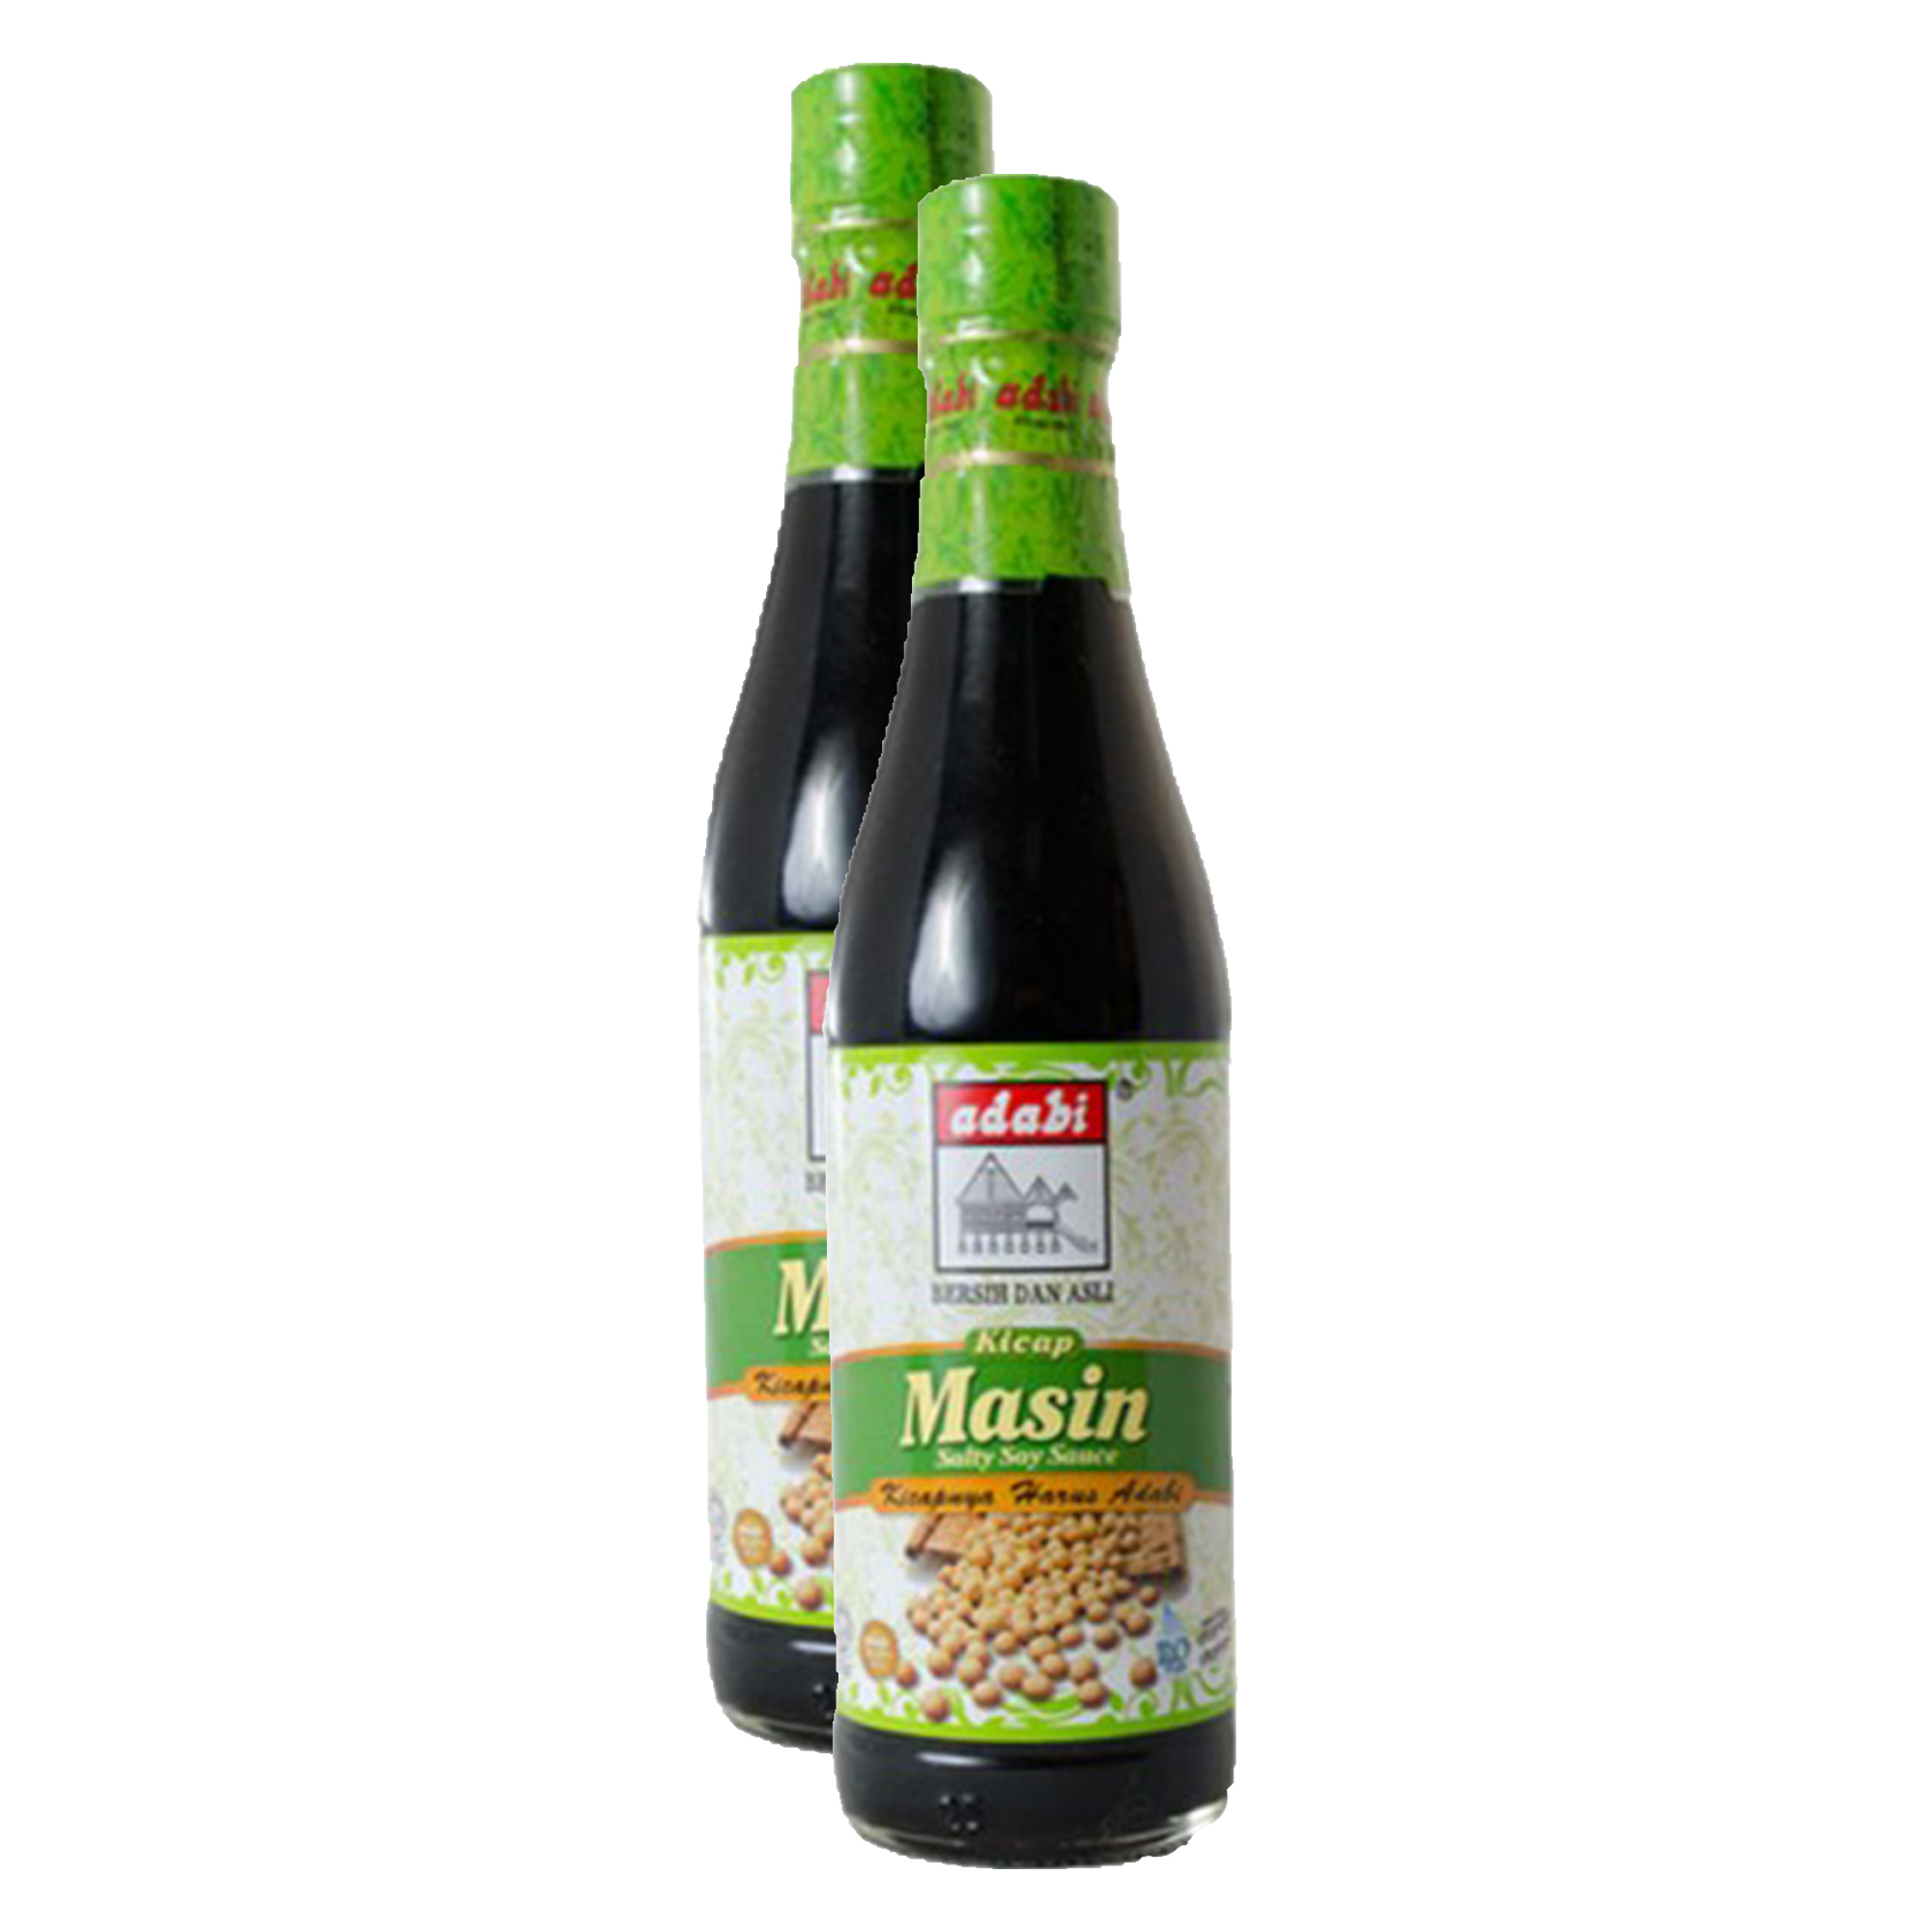 340ml x 2 Bottles Kicap Masin (1).jpg